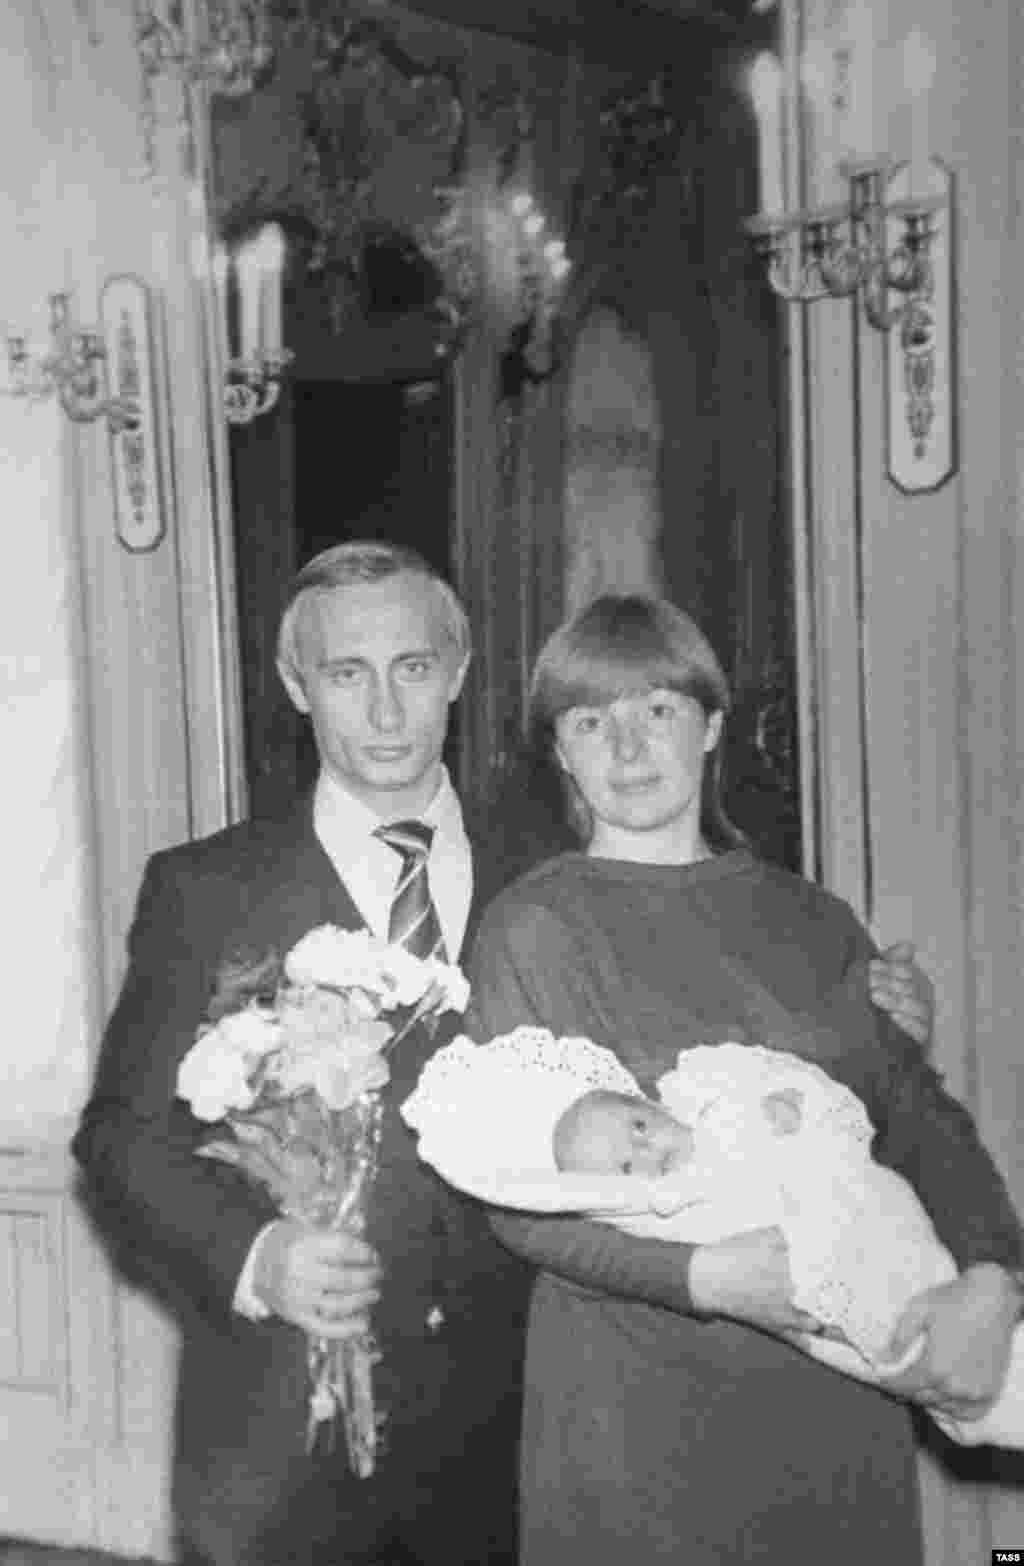 Vladimir Putin, his wife, Lyudmila, and daughter Maria in a photograph from the spring of 1985